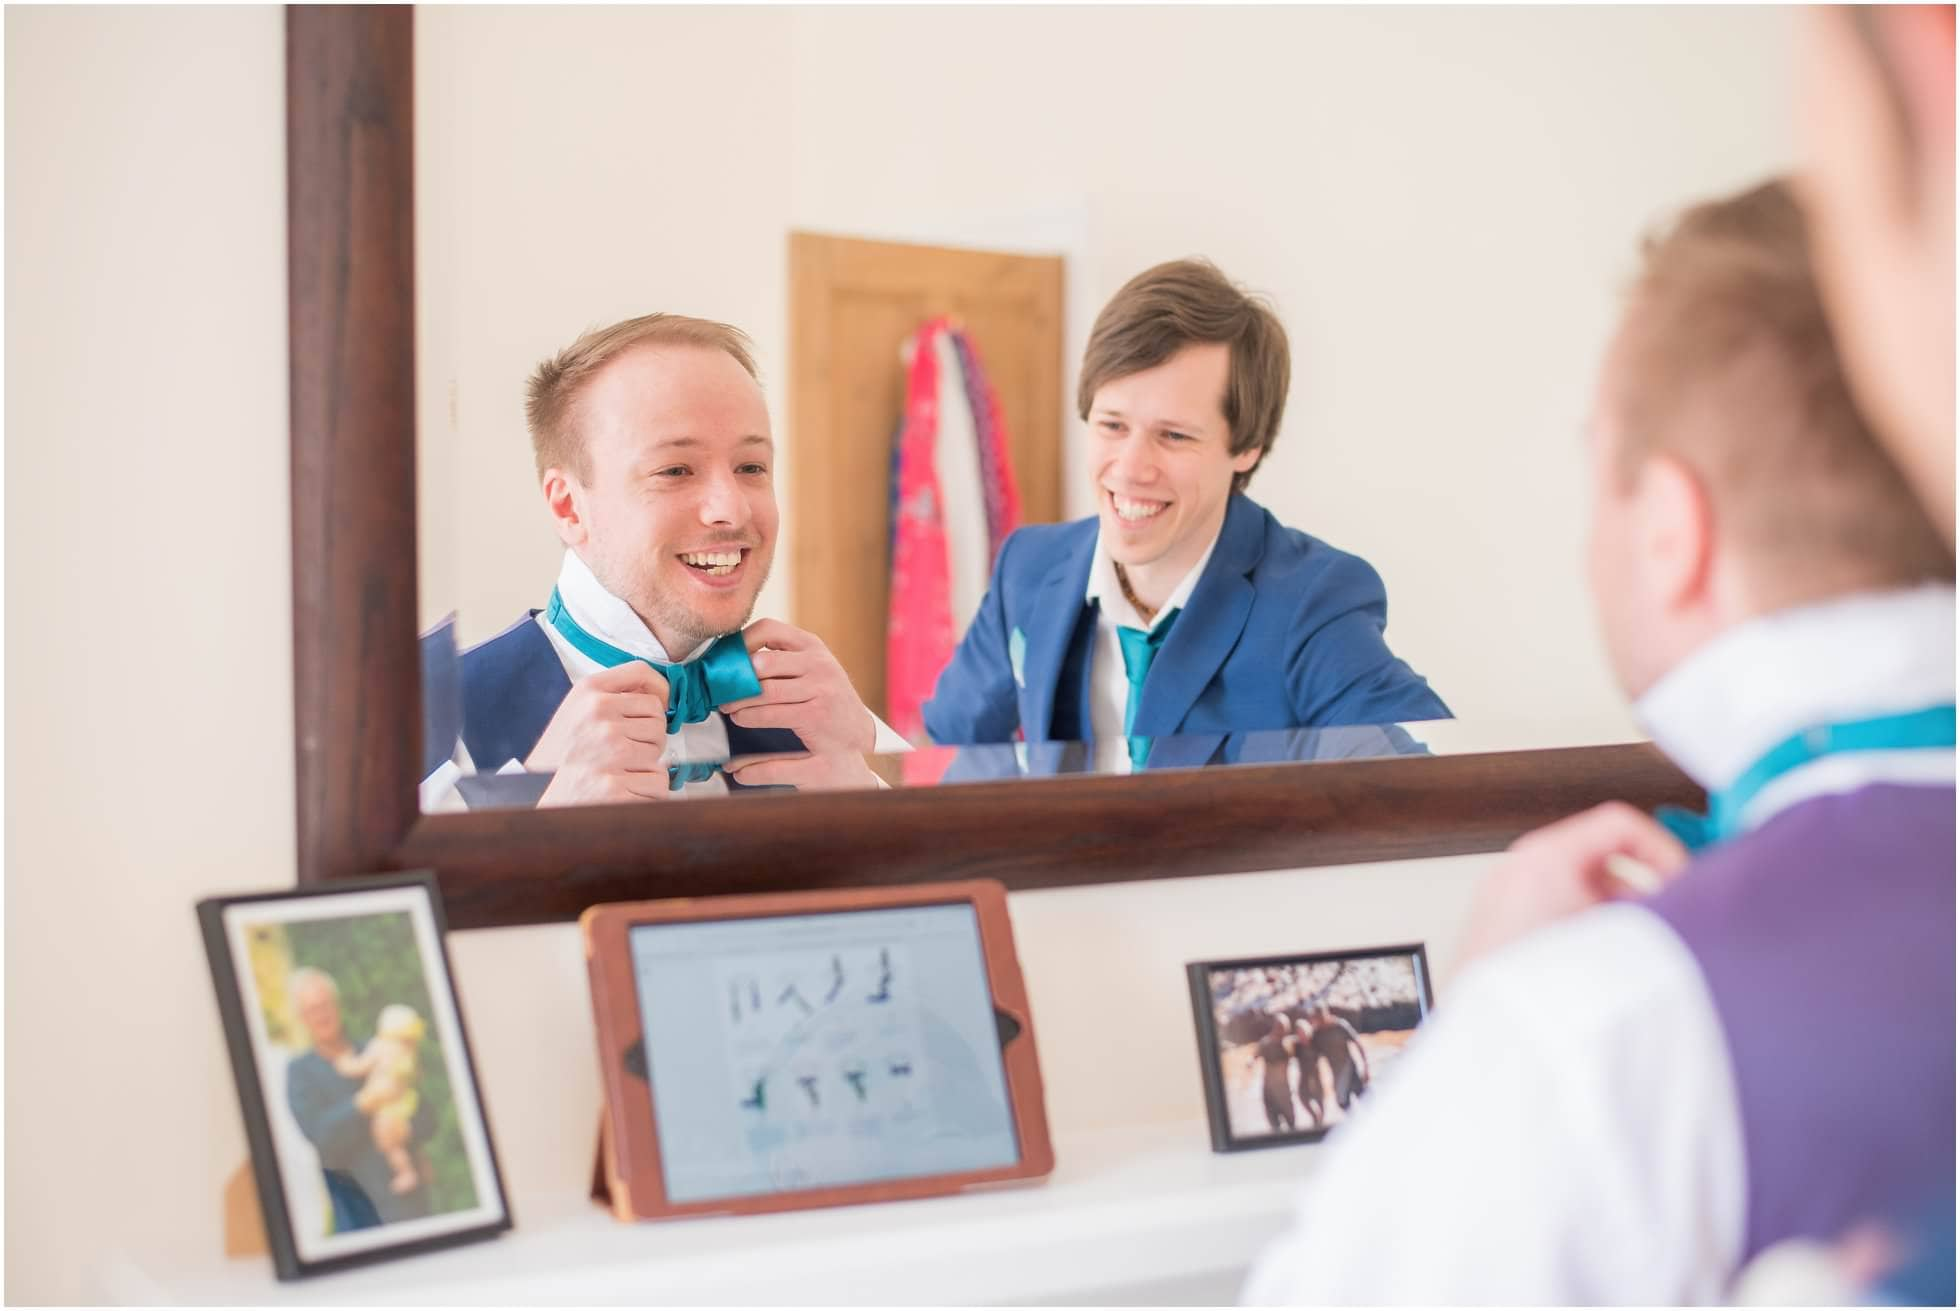 Tying bow ties for your wedding - tricky!